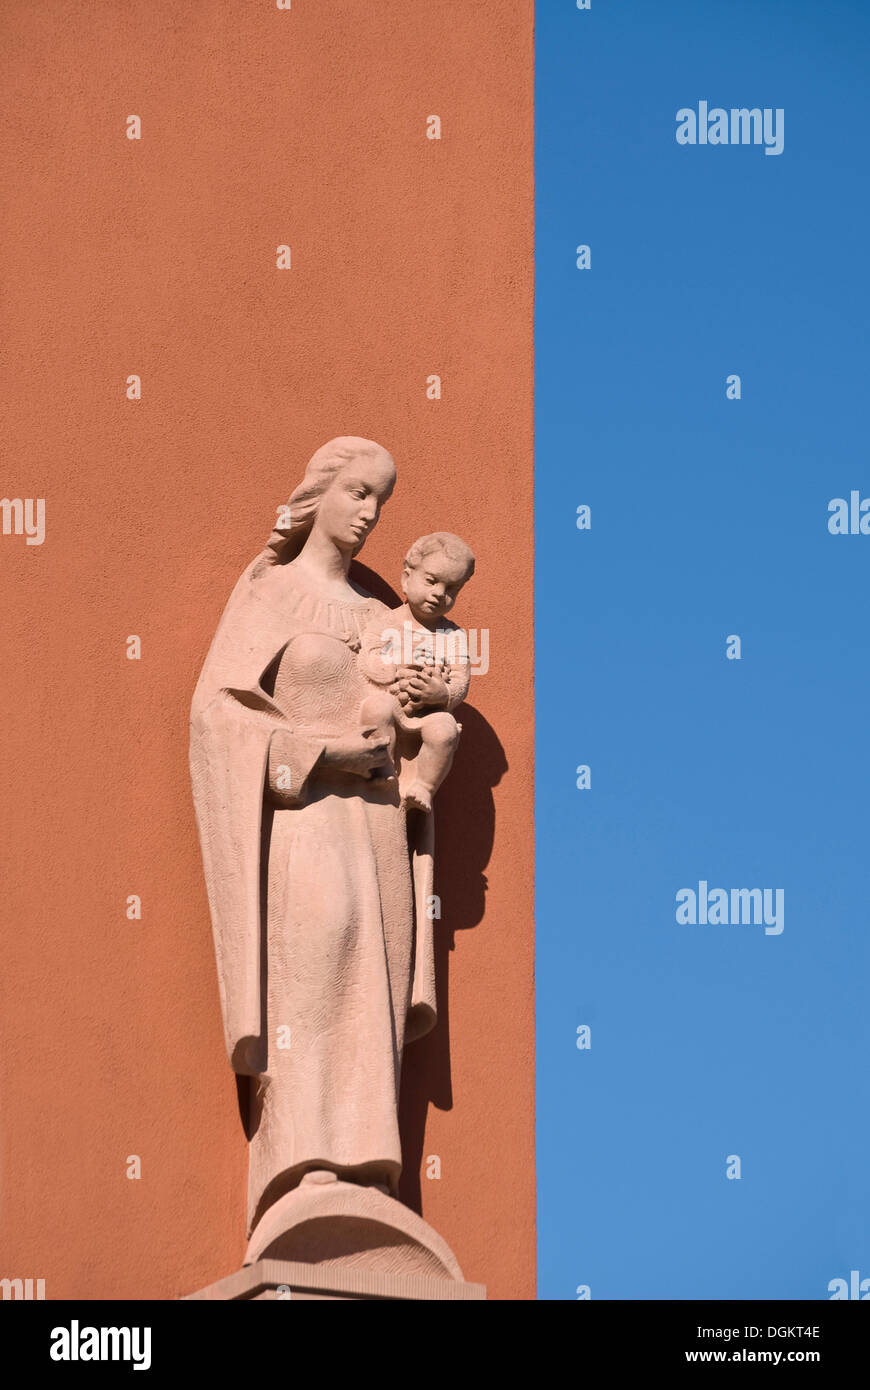 Sandstone statue of Mary with Jesus - Stock Image